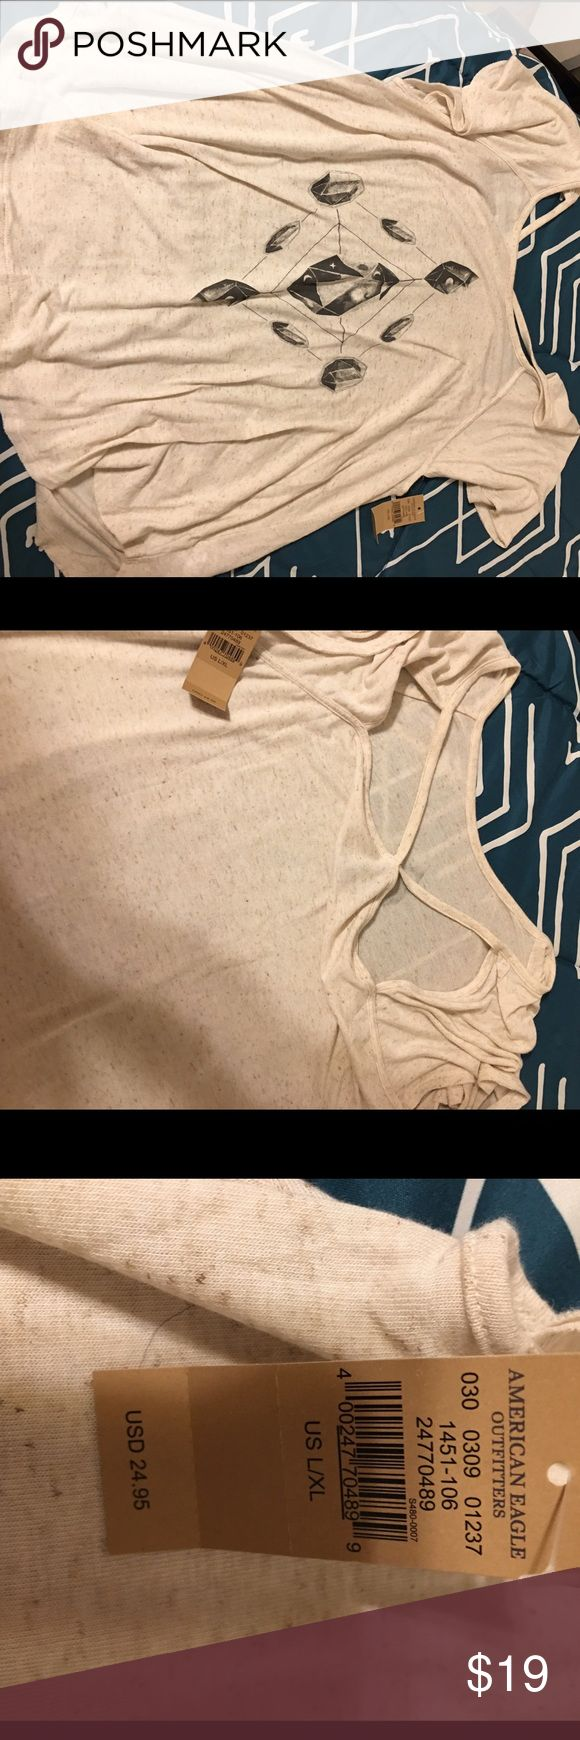 American Eagle Outfitters Jegging Tee! NWT! Tried on, didn't look right on me. ☹️️ Awesome crystal boho hippie design. American Eagle Outfitters Tops Tees - Short Sleeve